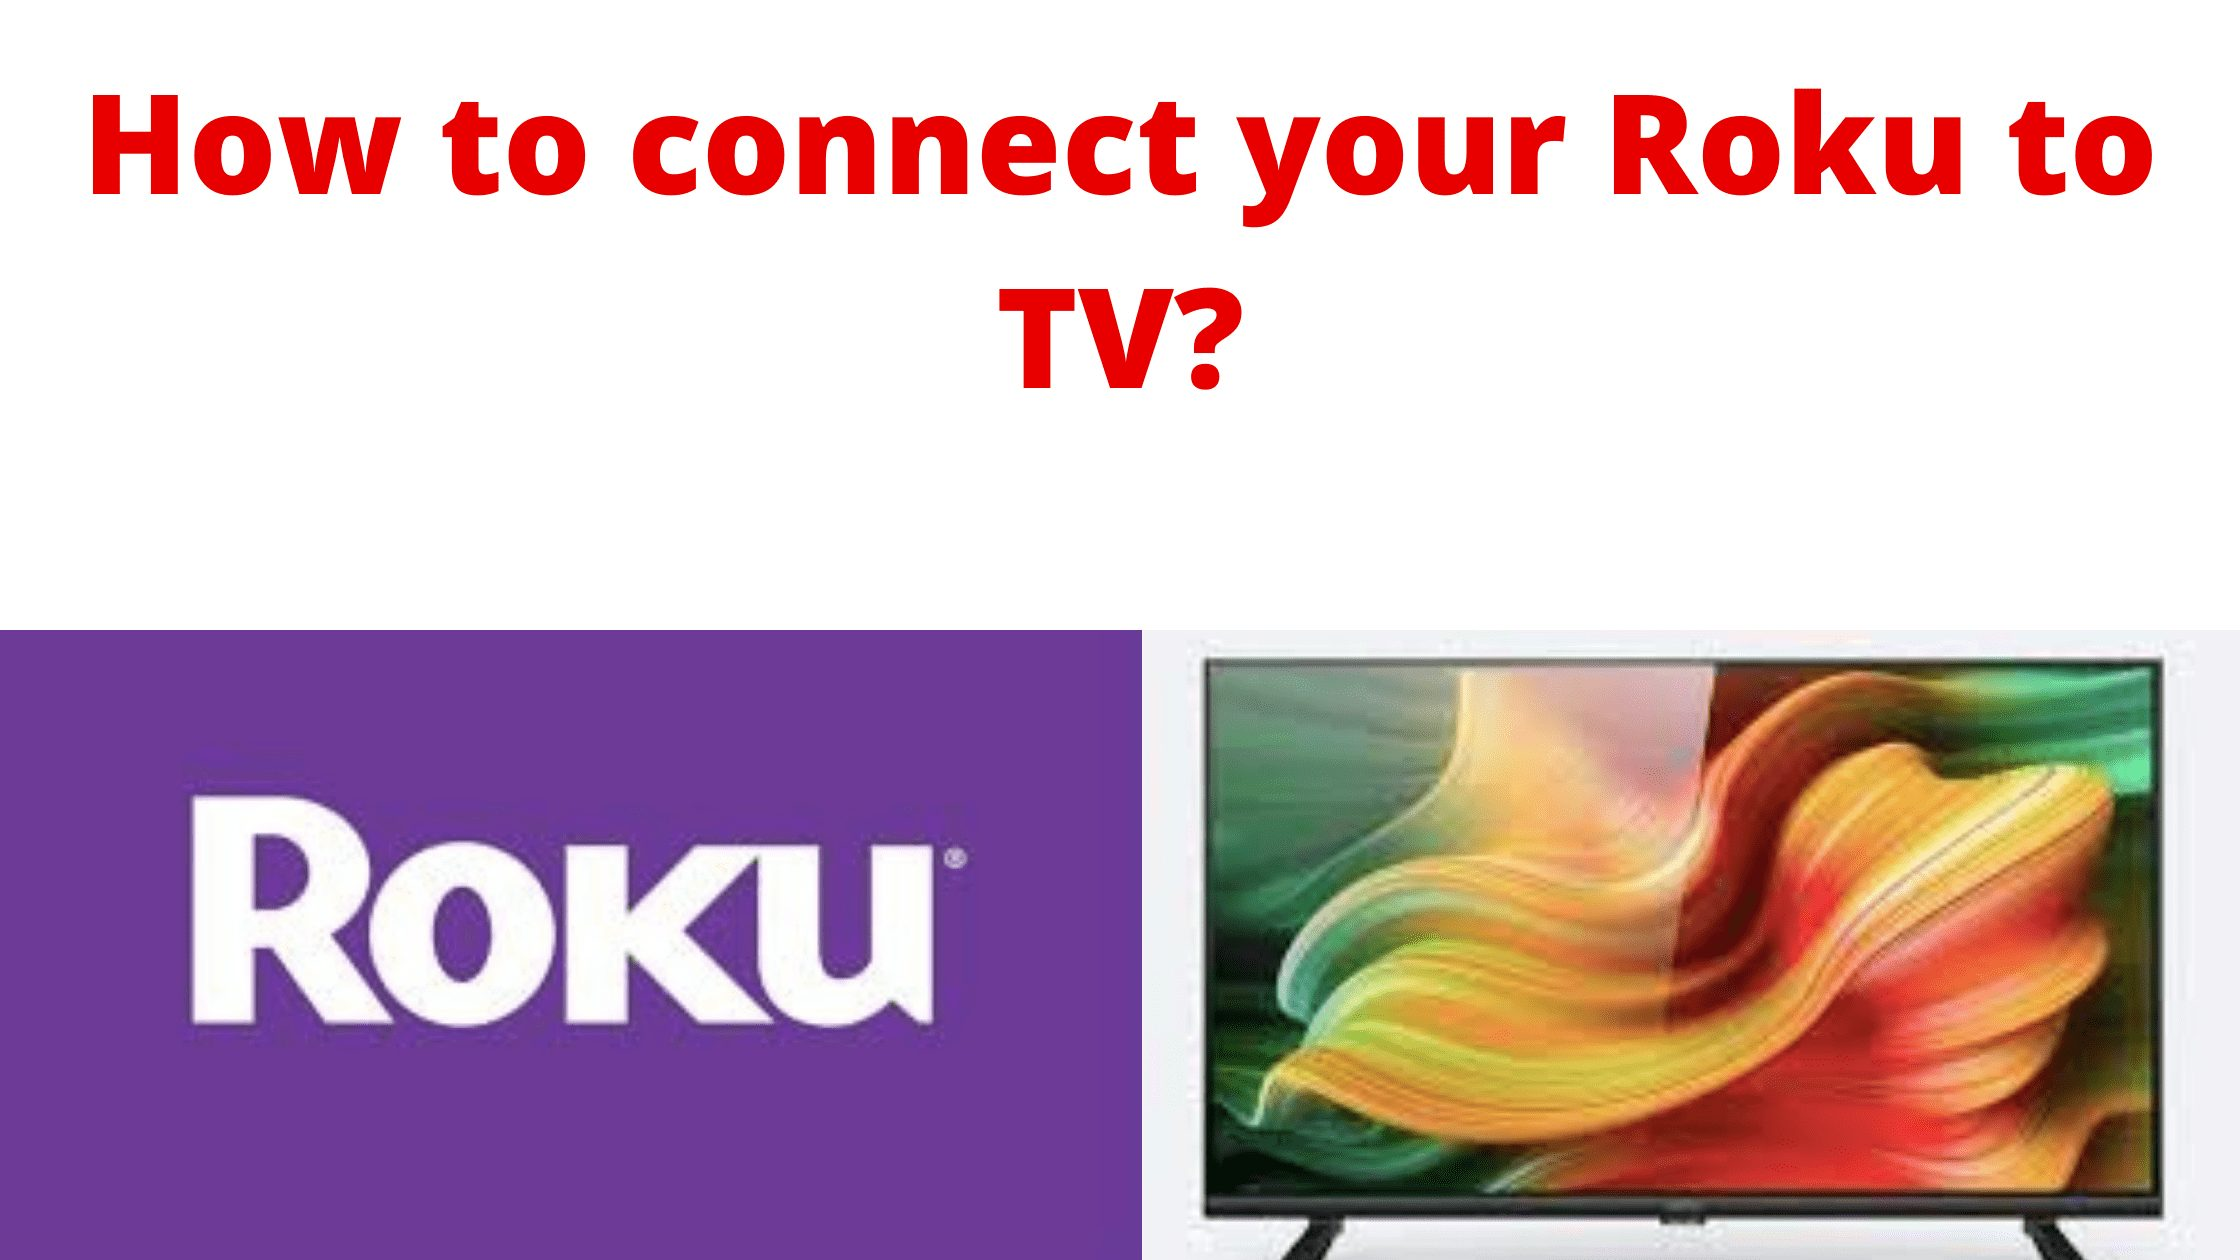 How to connect your Roku to TV